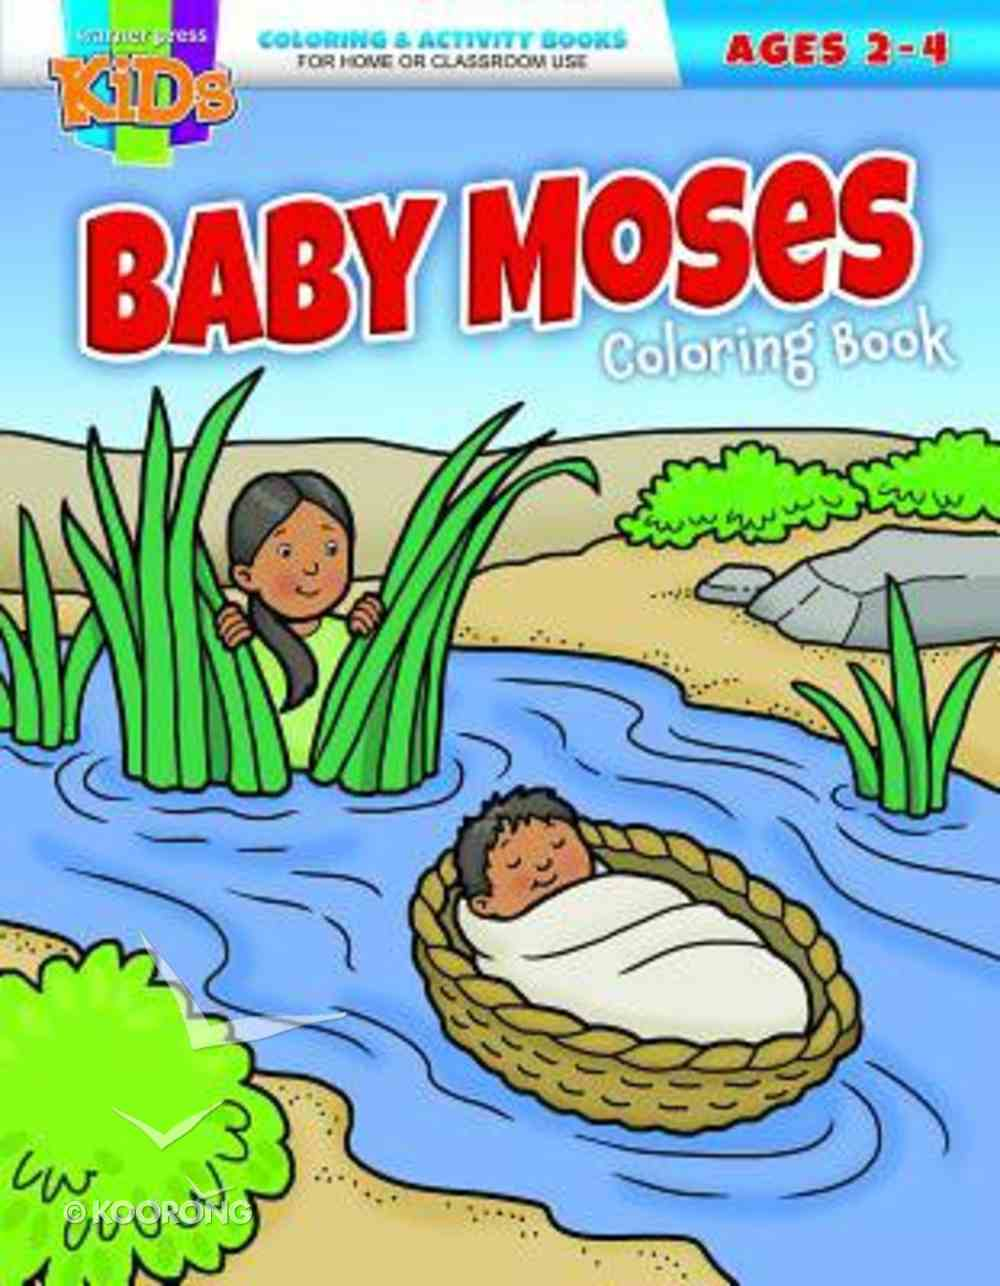 Baby Moses (Ages 2-4, Reproducible) (Warner Press Colouring/activity Under 5's Series) Paperback